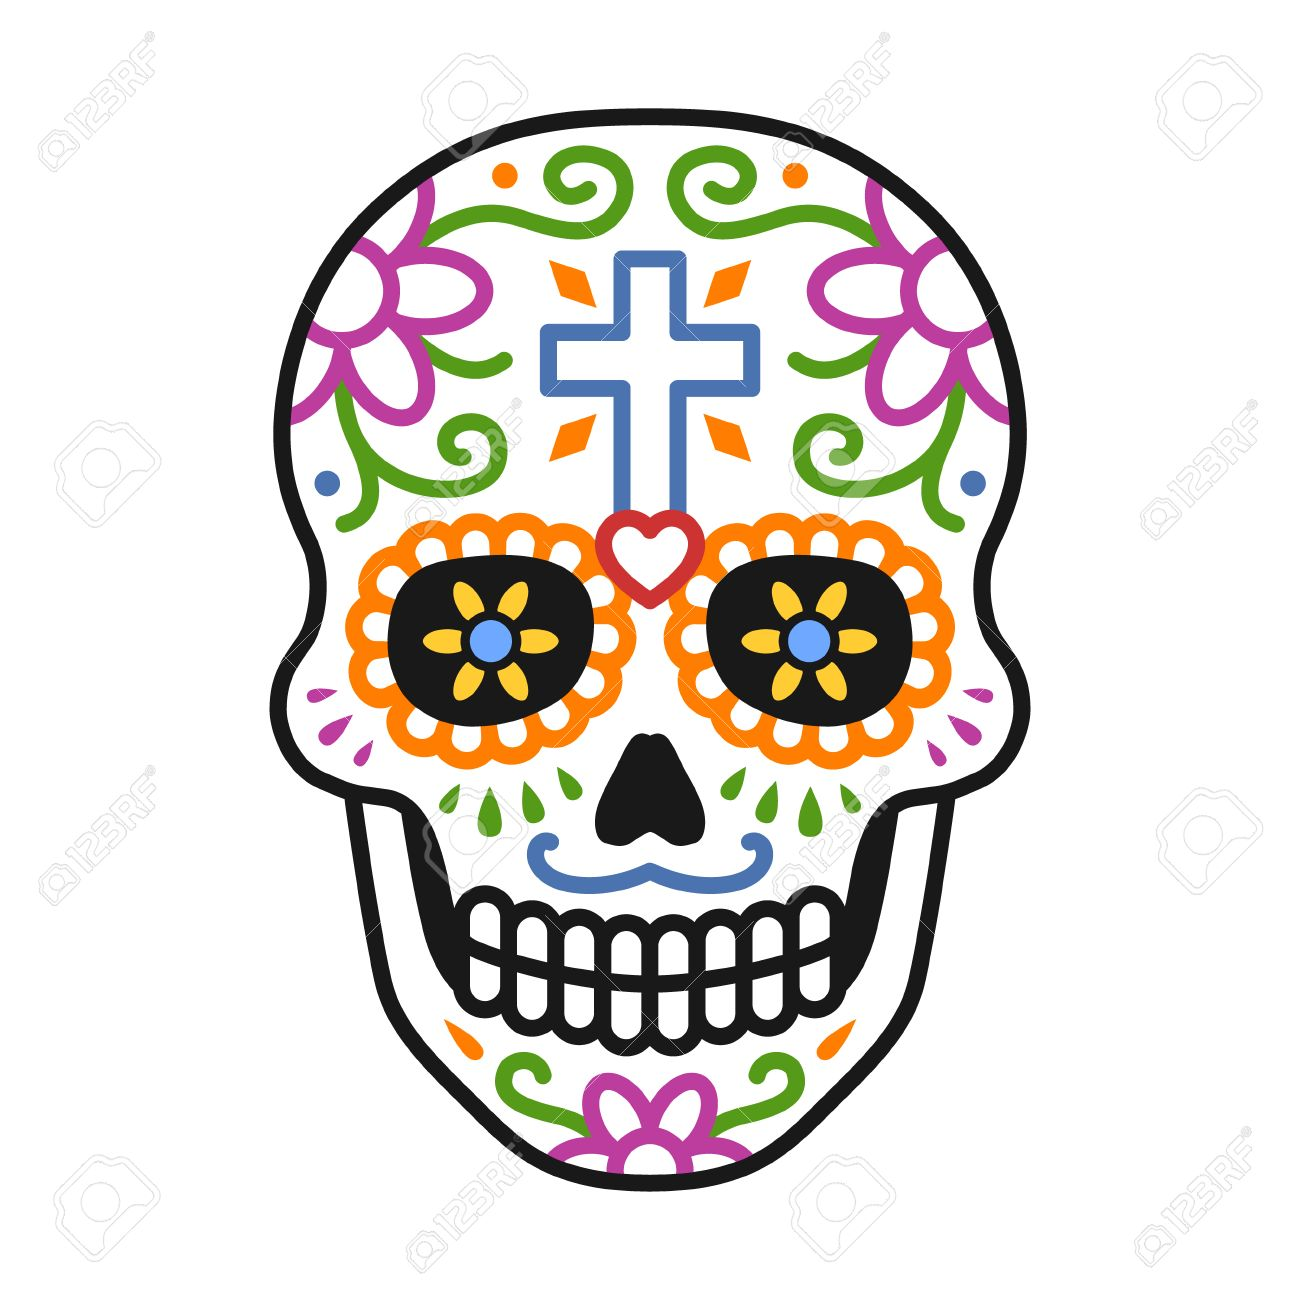 Decorated Skull Calavera Celebrating Day Of The Dead Line Colorful